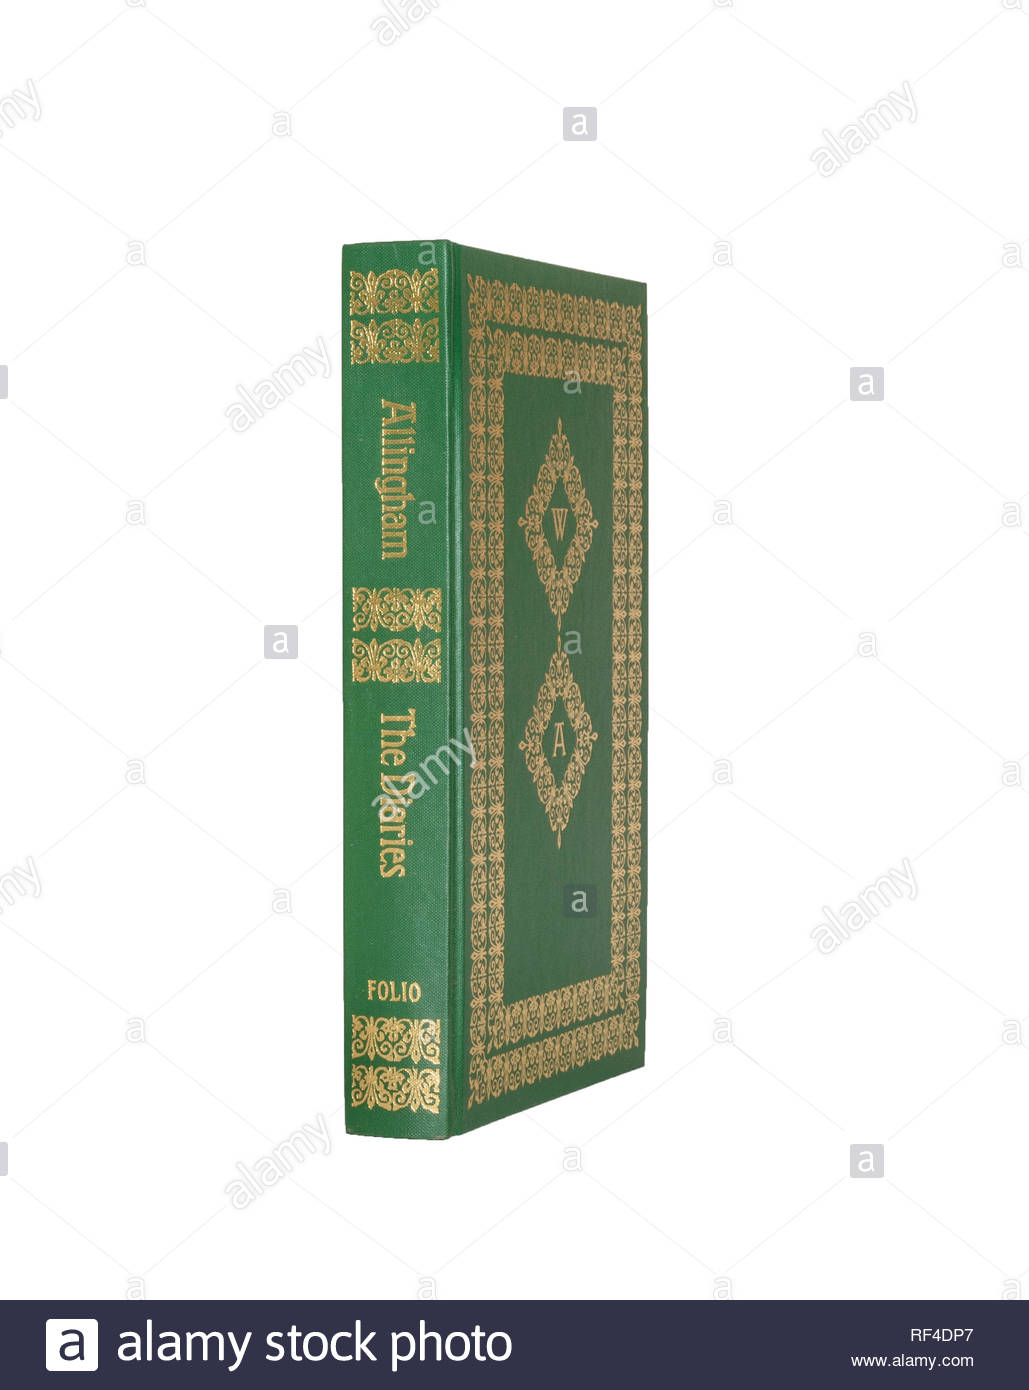 Folio Society edition of the Diaries of William Allingham, isolated on pure white background. Stock Photo